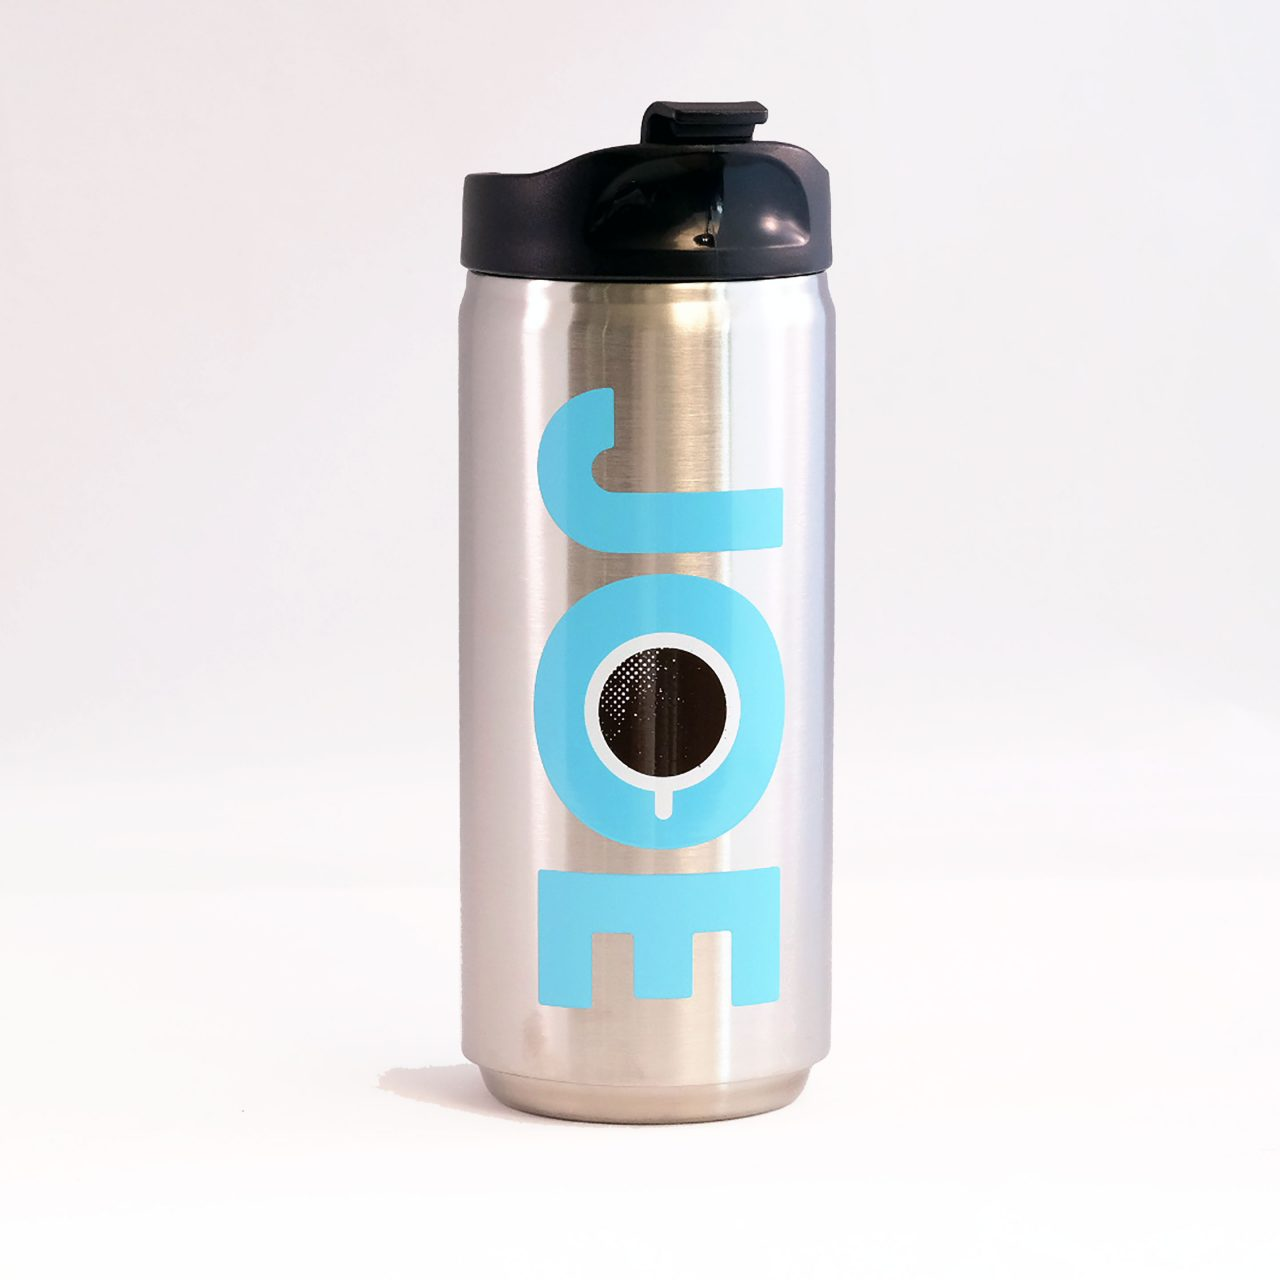 Joe Coffee travel mug